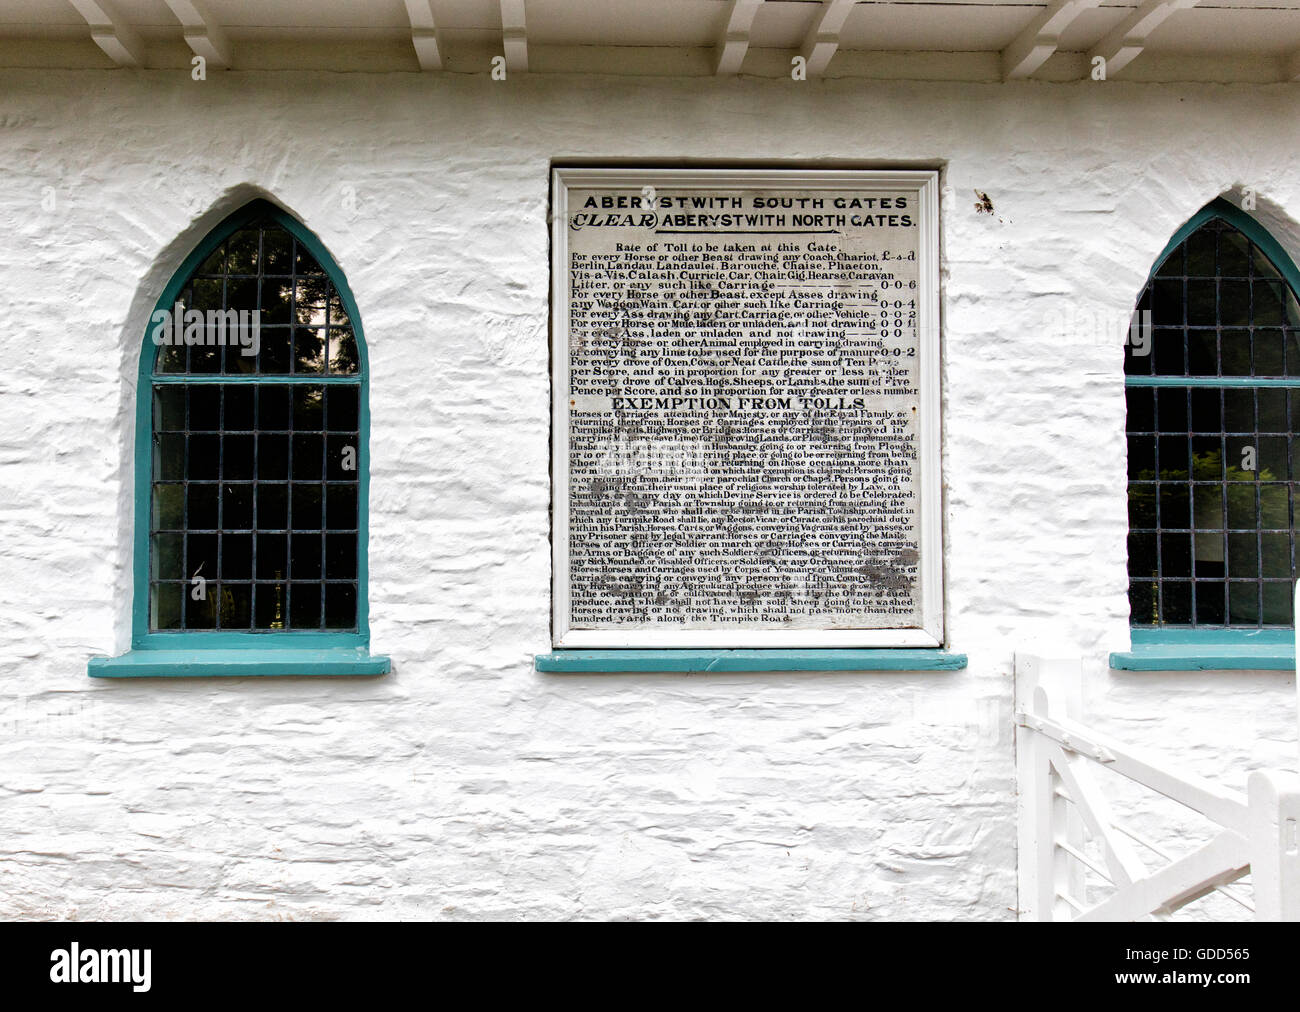 Rules and fees notice on reconstructed Aberystwyth South Gates Toll House at St Fagan's National History Museum - Stock Image